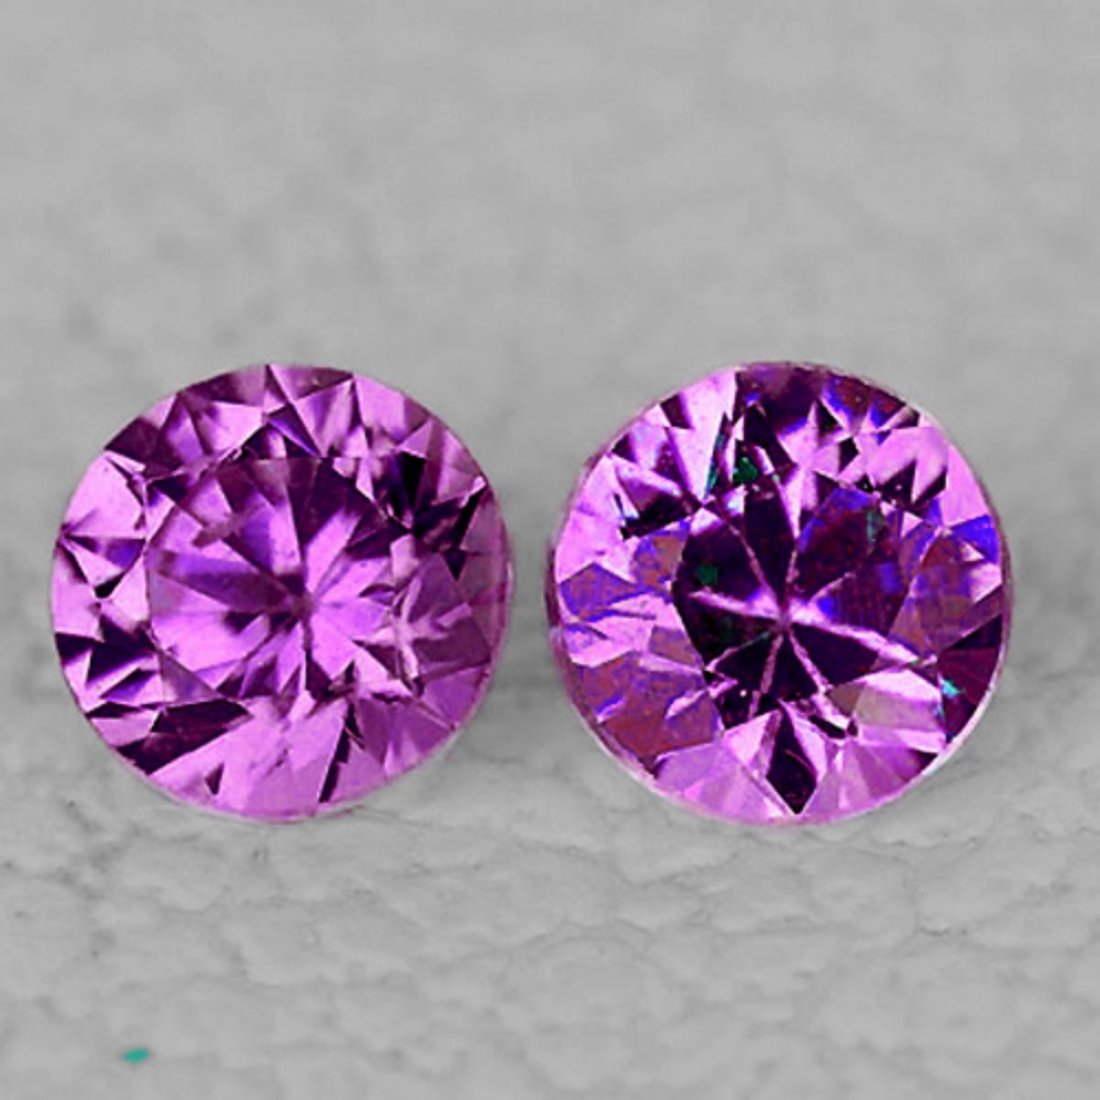 Natural Violet Pink Color Change Sapphire Pair Flawless